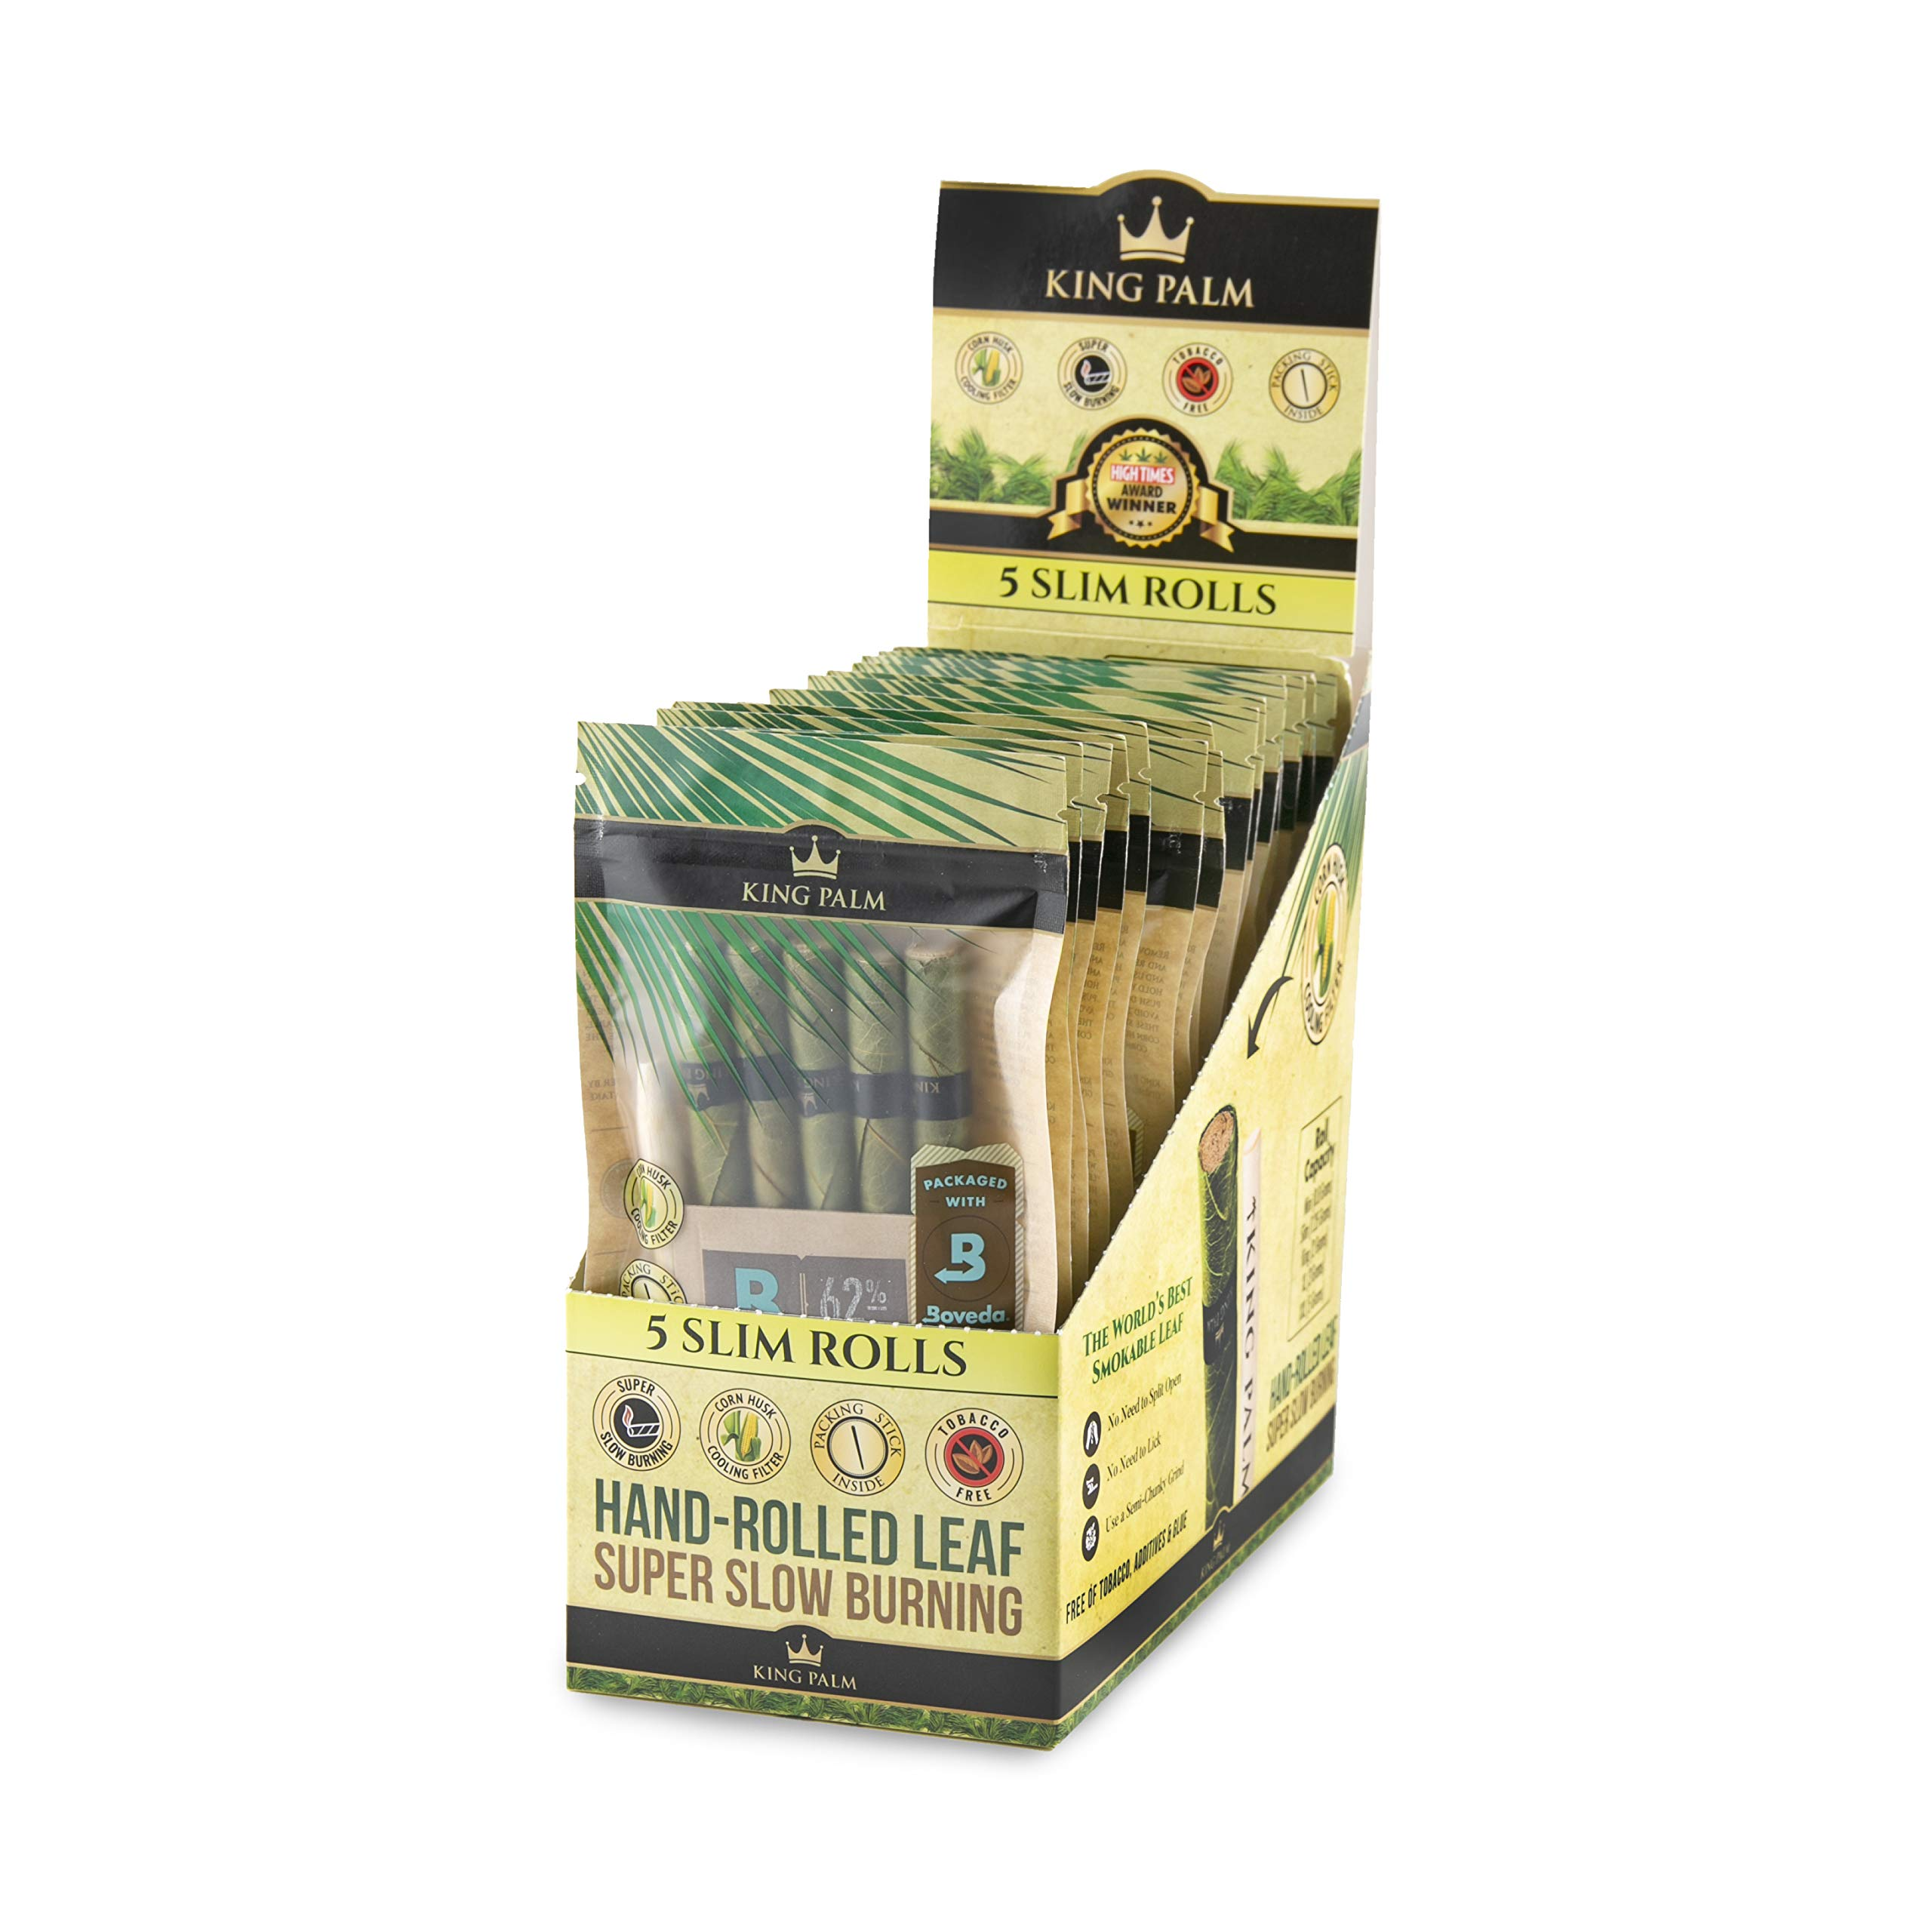 King Palm Hand Rolled Leaf Wrap Rolls - 5 Rolls/Pouch - 15 Pouch Display Box - (Slim) by King Palms